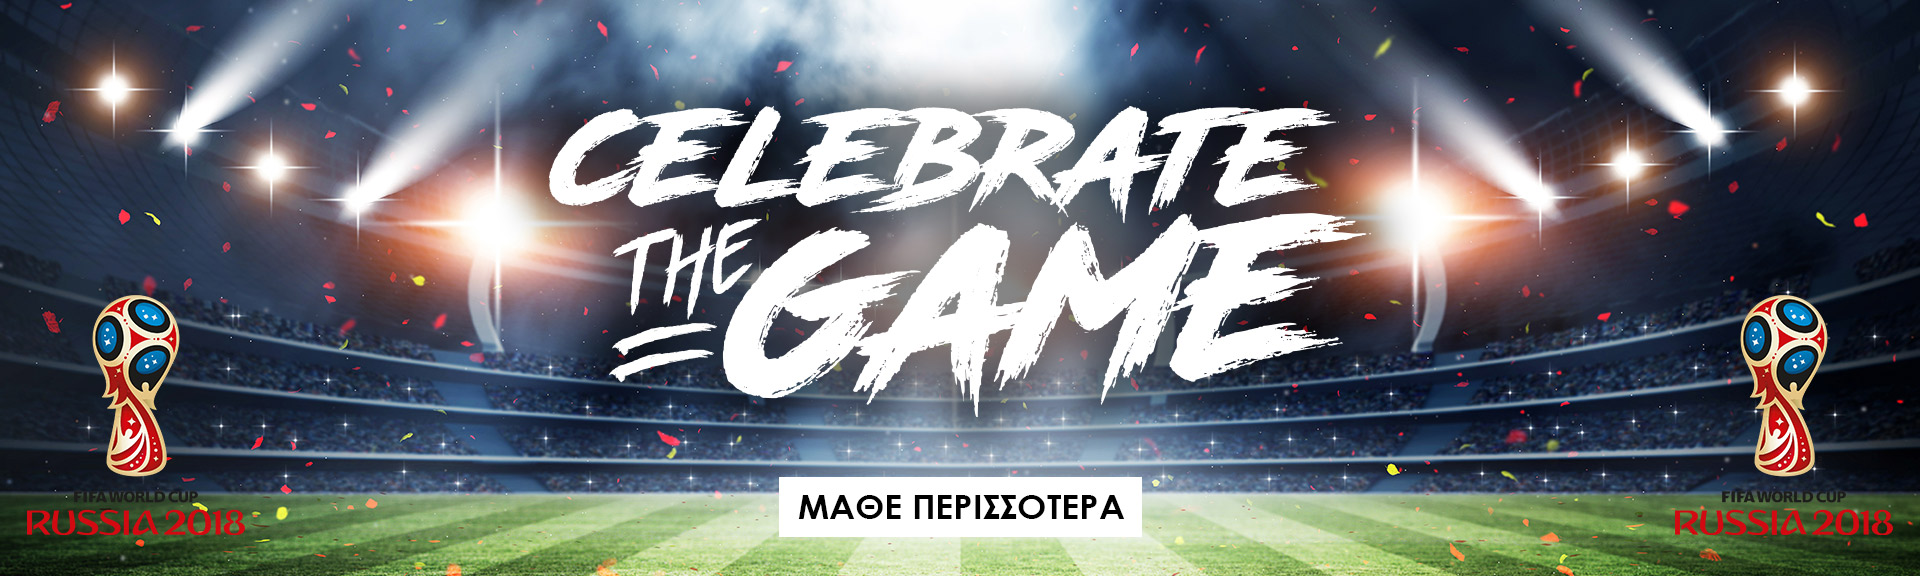 Celebrate The Game